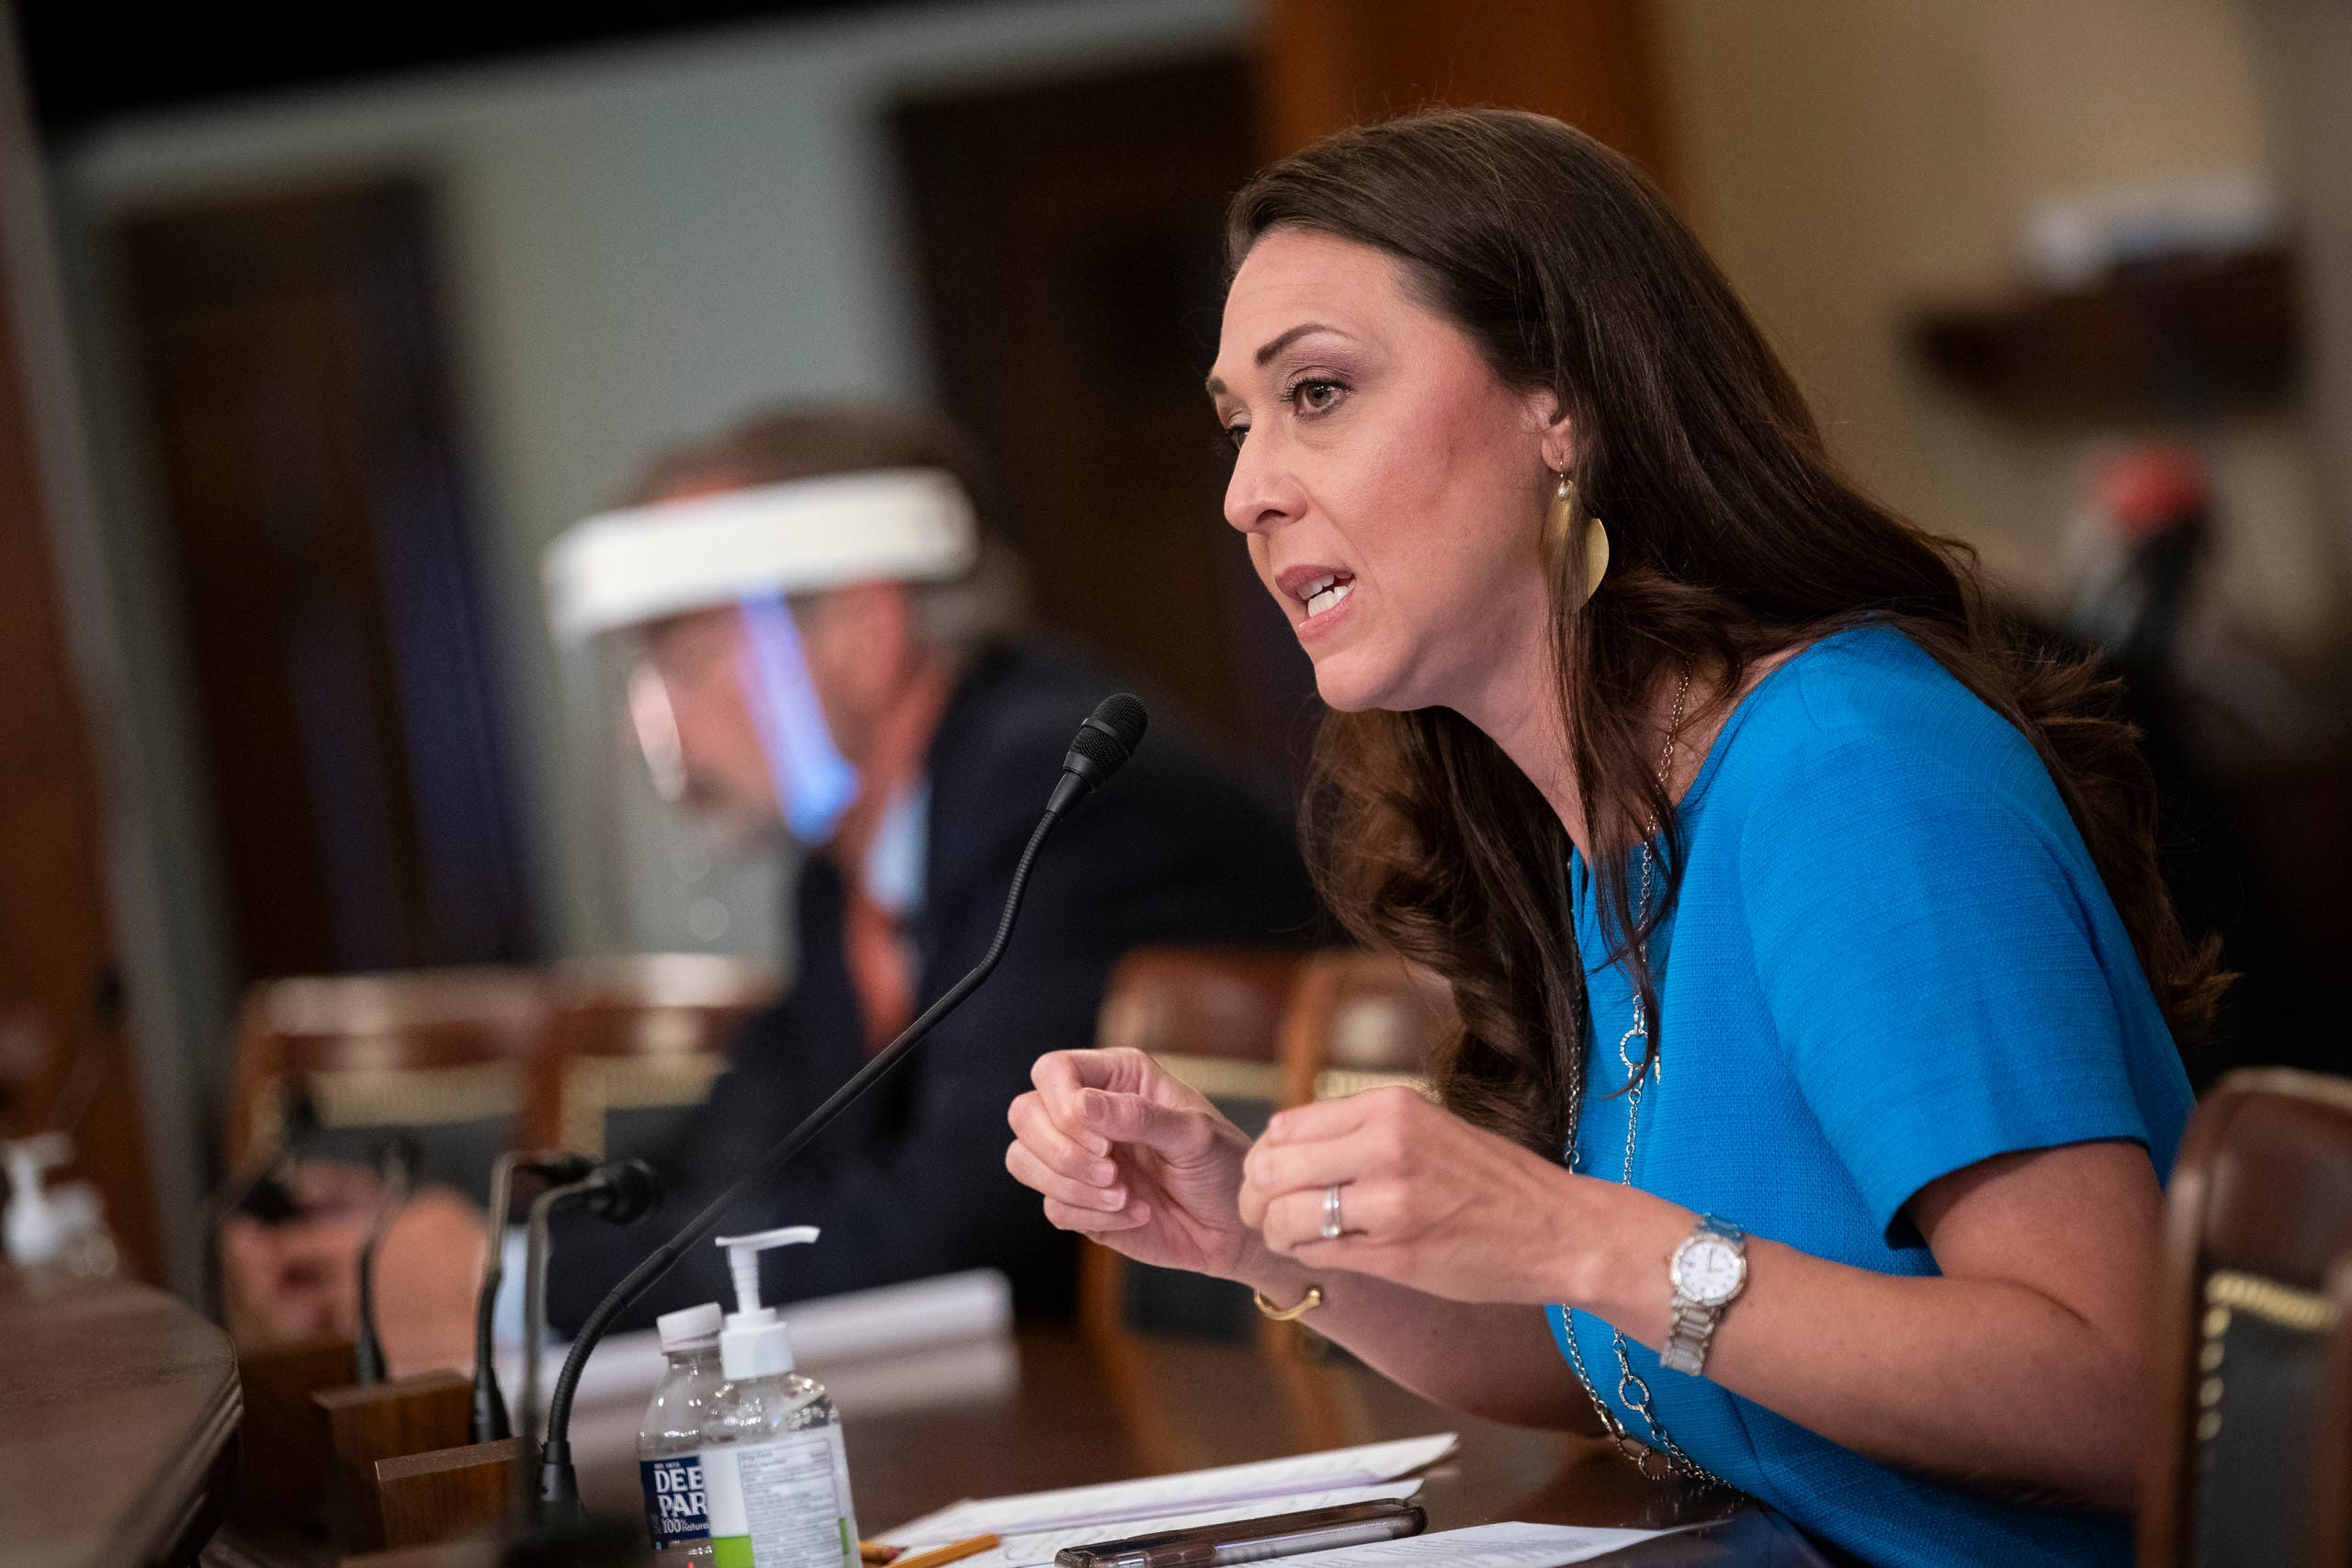 Rep. Jaime Herrera Beutler, R-Wash., speaks during a Labor, Health and Human Services, Education, and Related Agencies Appropriations Subcommittee hearing about the COVID-19 response on Capitol Hill. (AP)